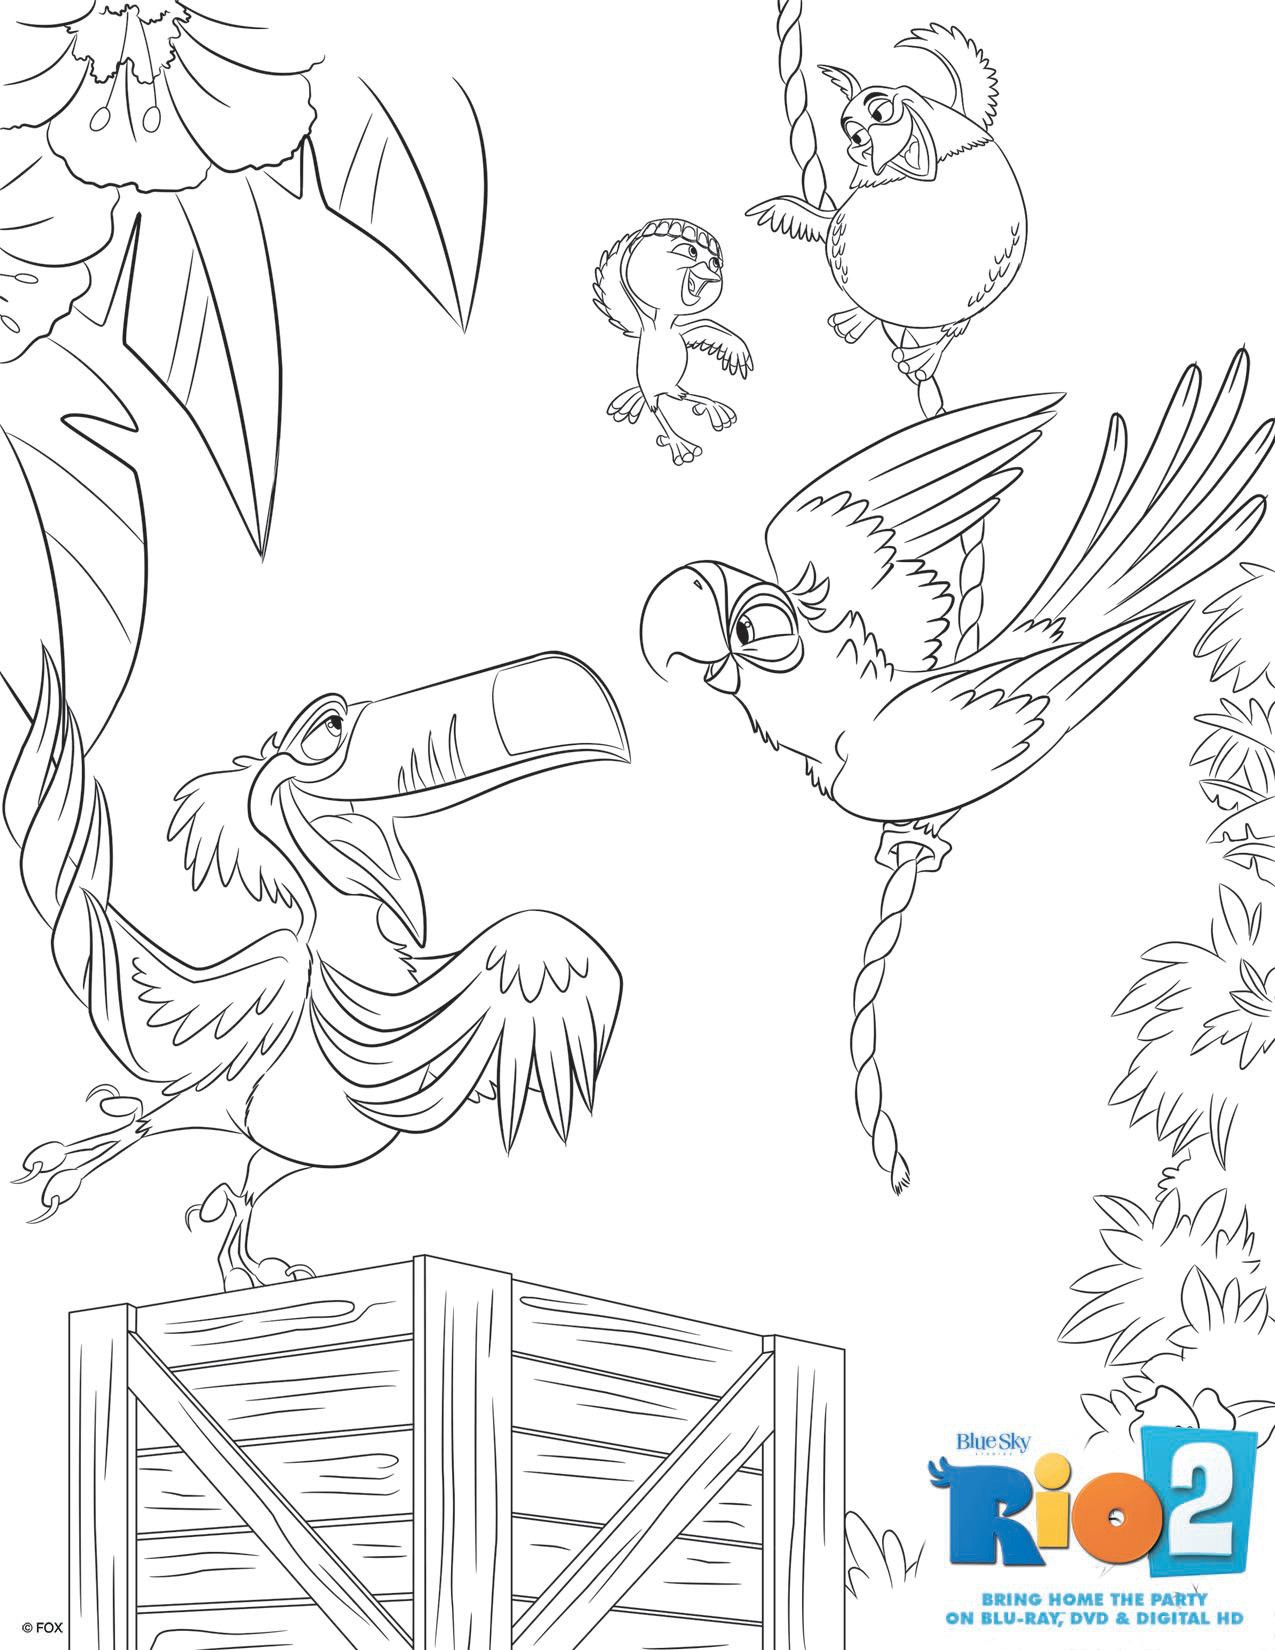 Rio 2 Coloring Pages To Download Part 2 Free Coloring Sheets